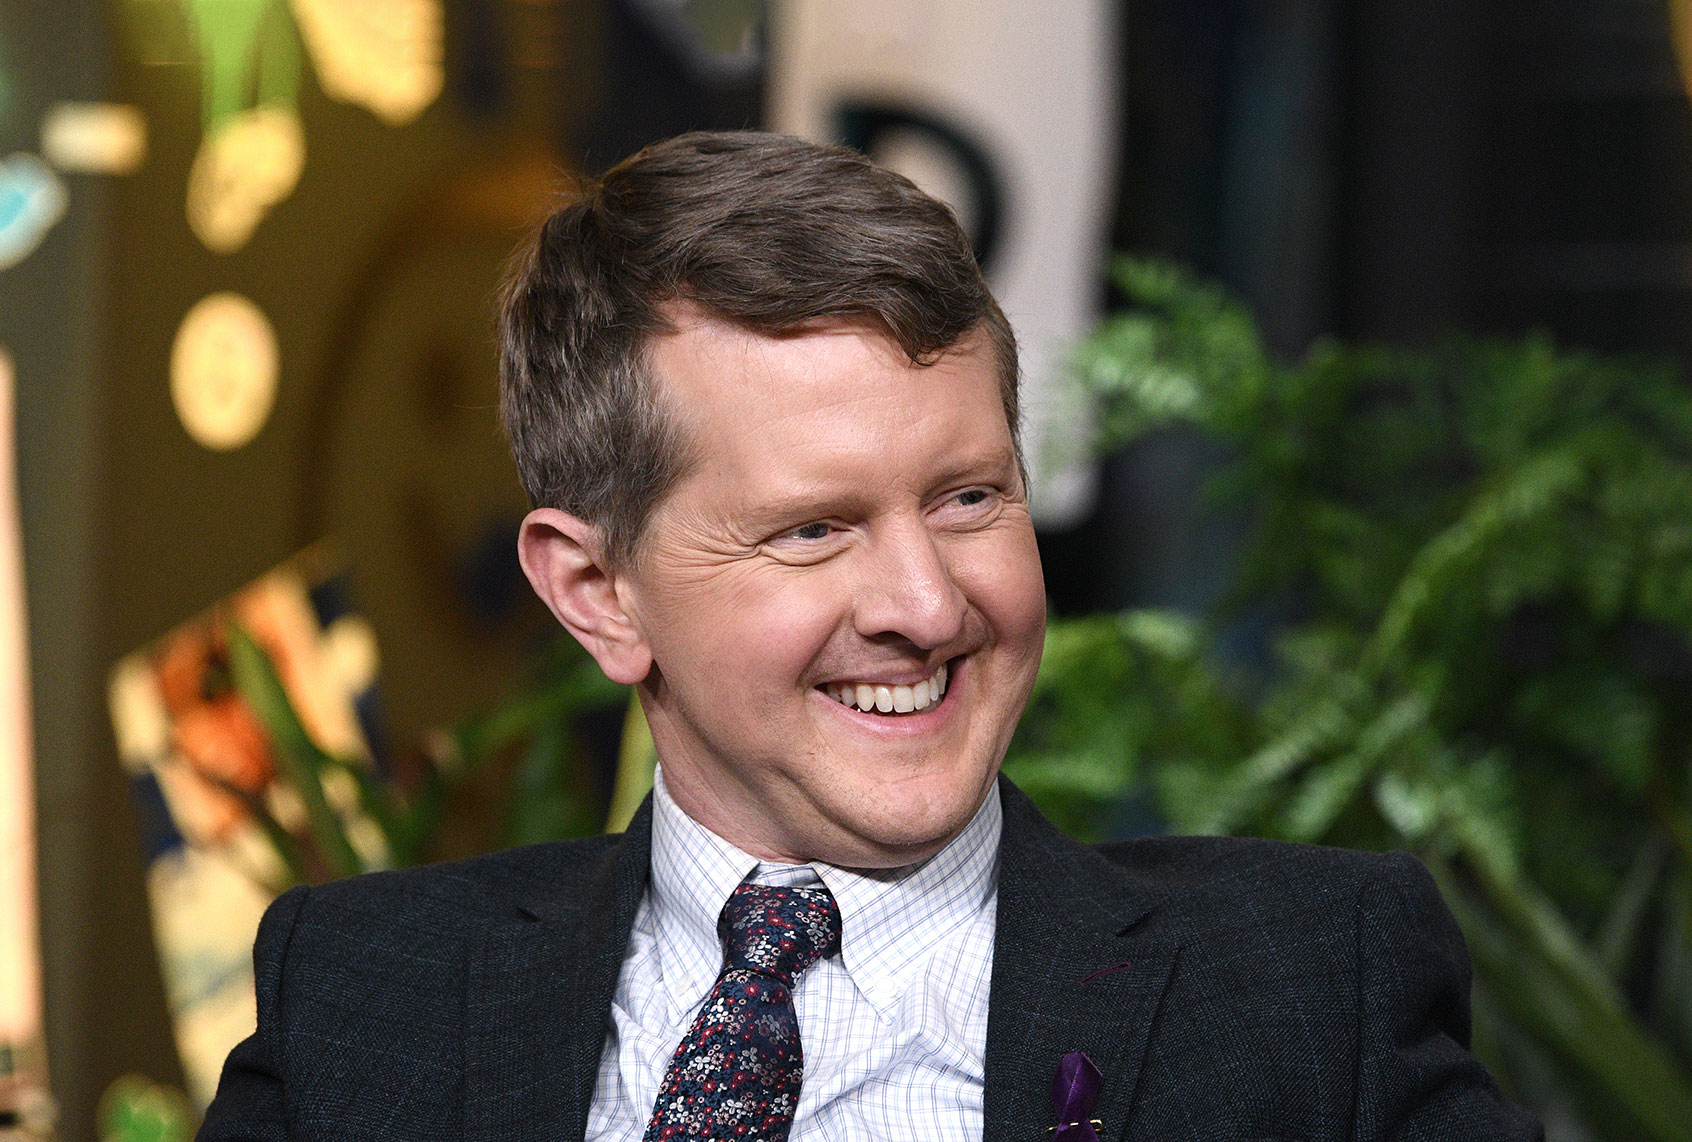 Ken Jennings past tweets mocking the disabled surface...